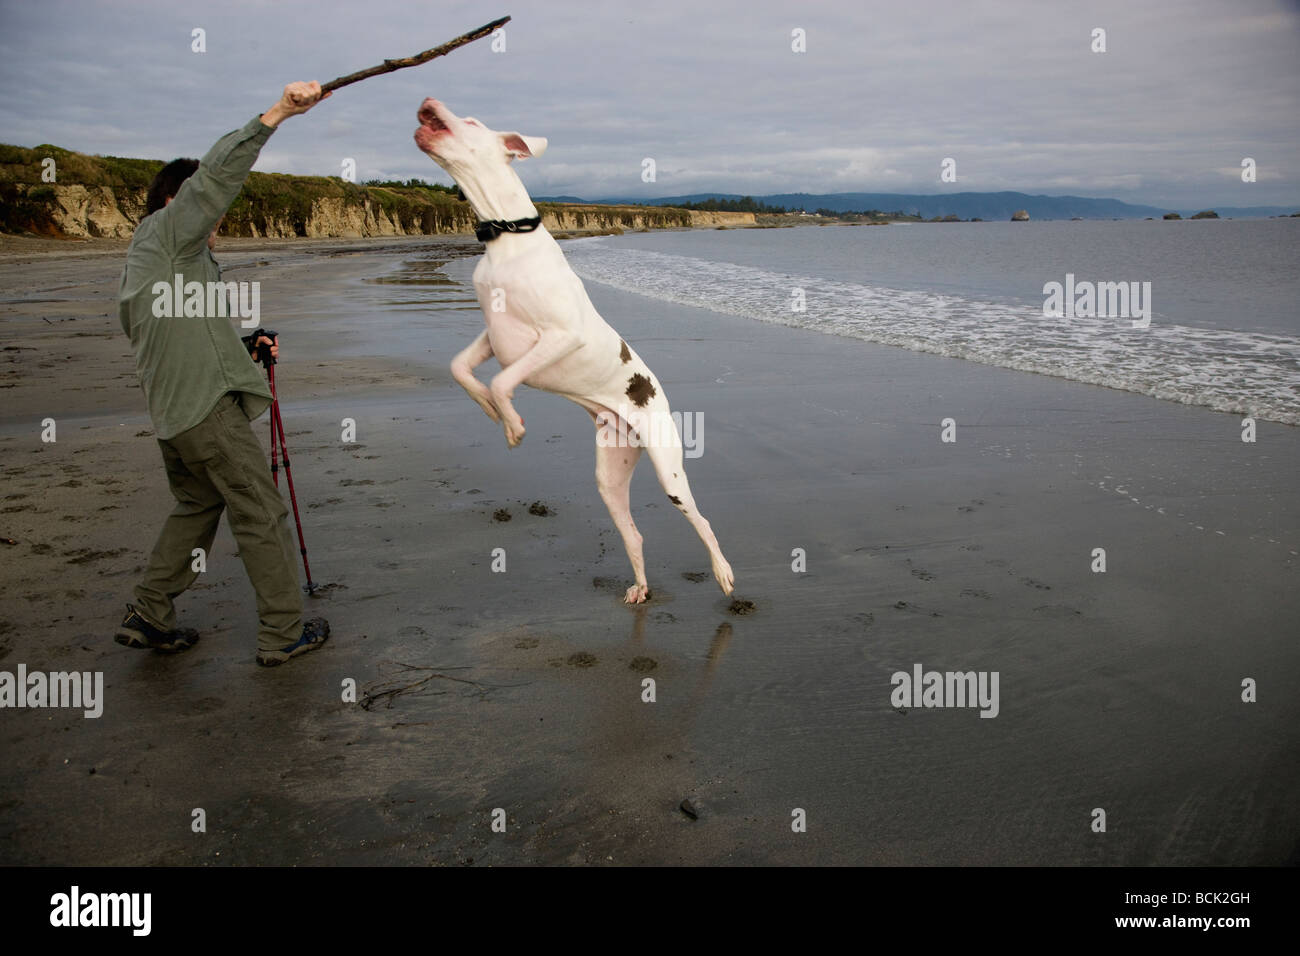 Owner preparing to throw stick for Great Dane. - Stock Image